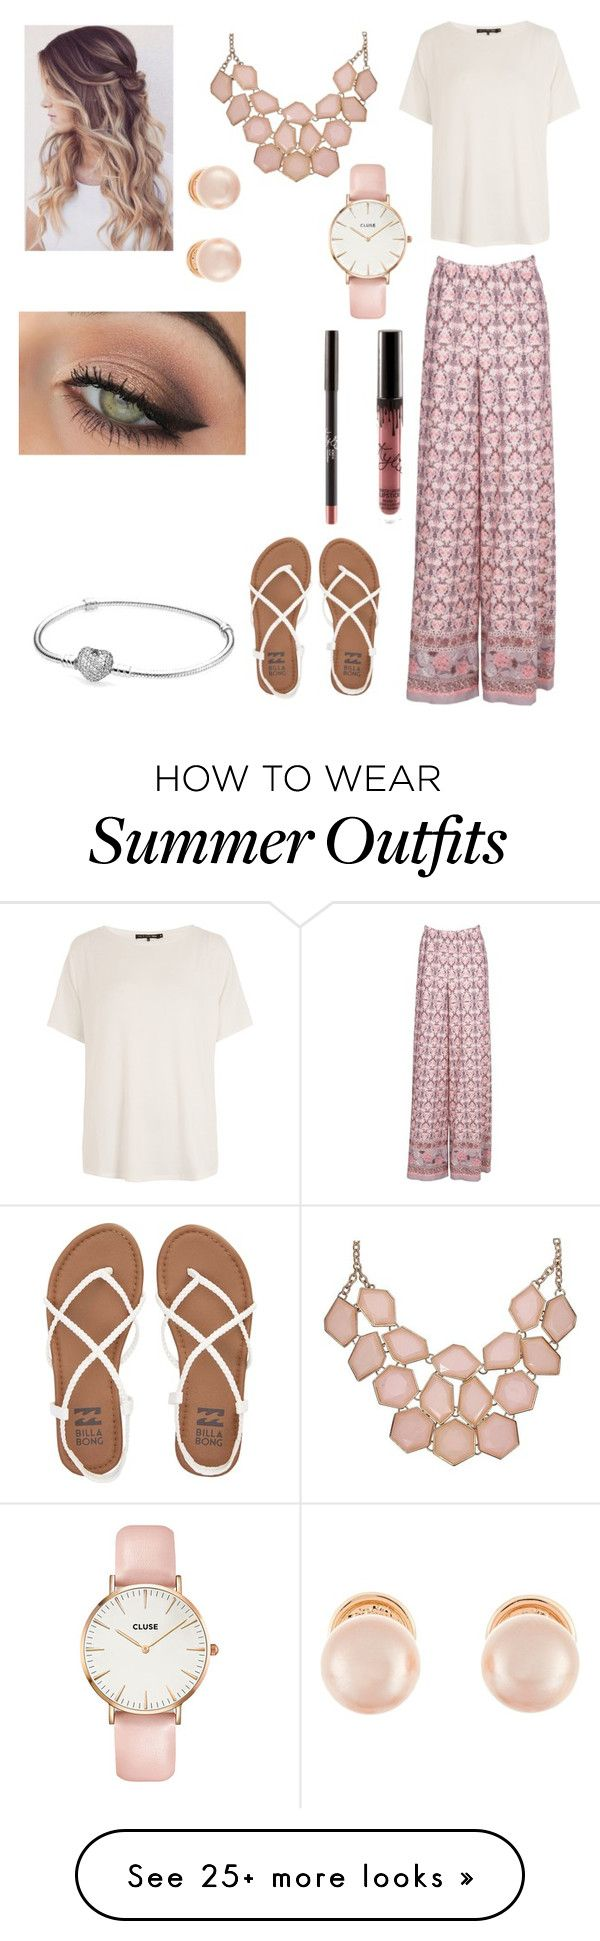 Cute Summer Dinner Outfit By Agrava On Polyvore Featuring Rag Bone JEAN Billabong Kenneth Jay Lane CLUSE Tarte And Pandora